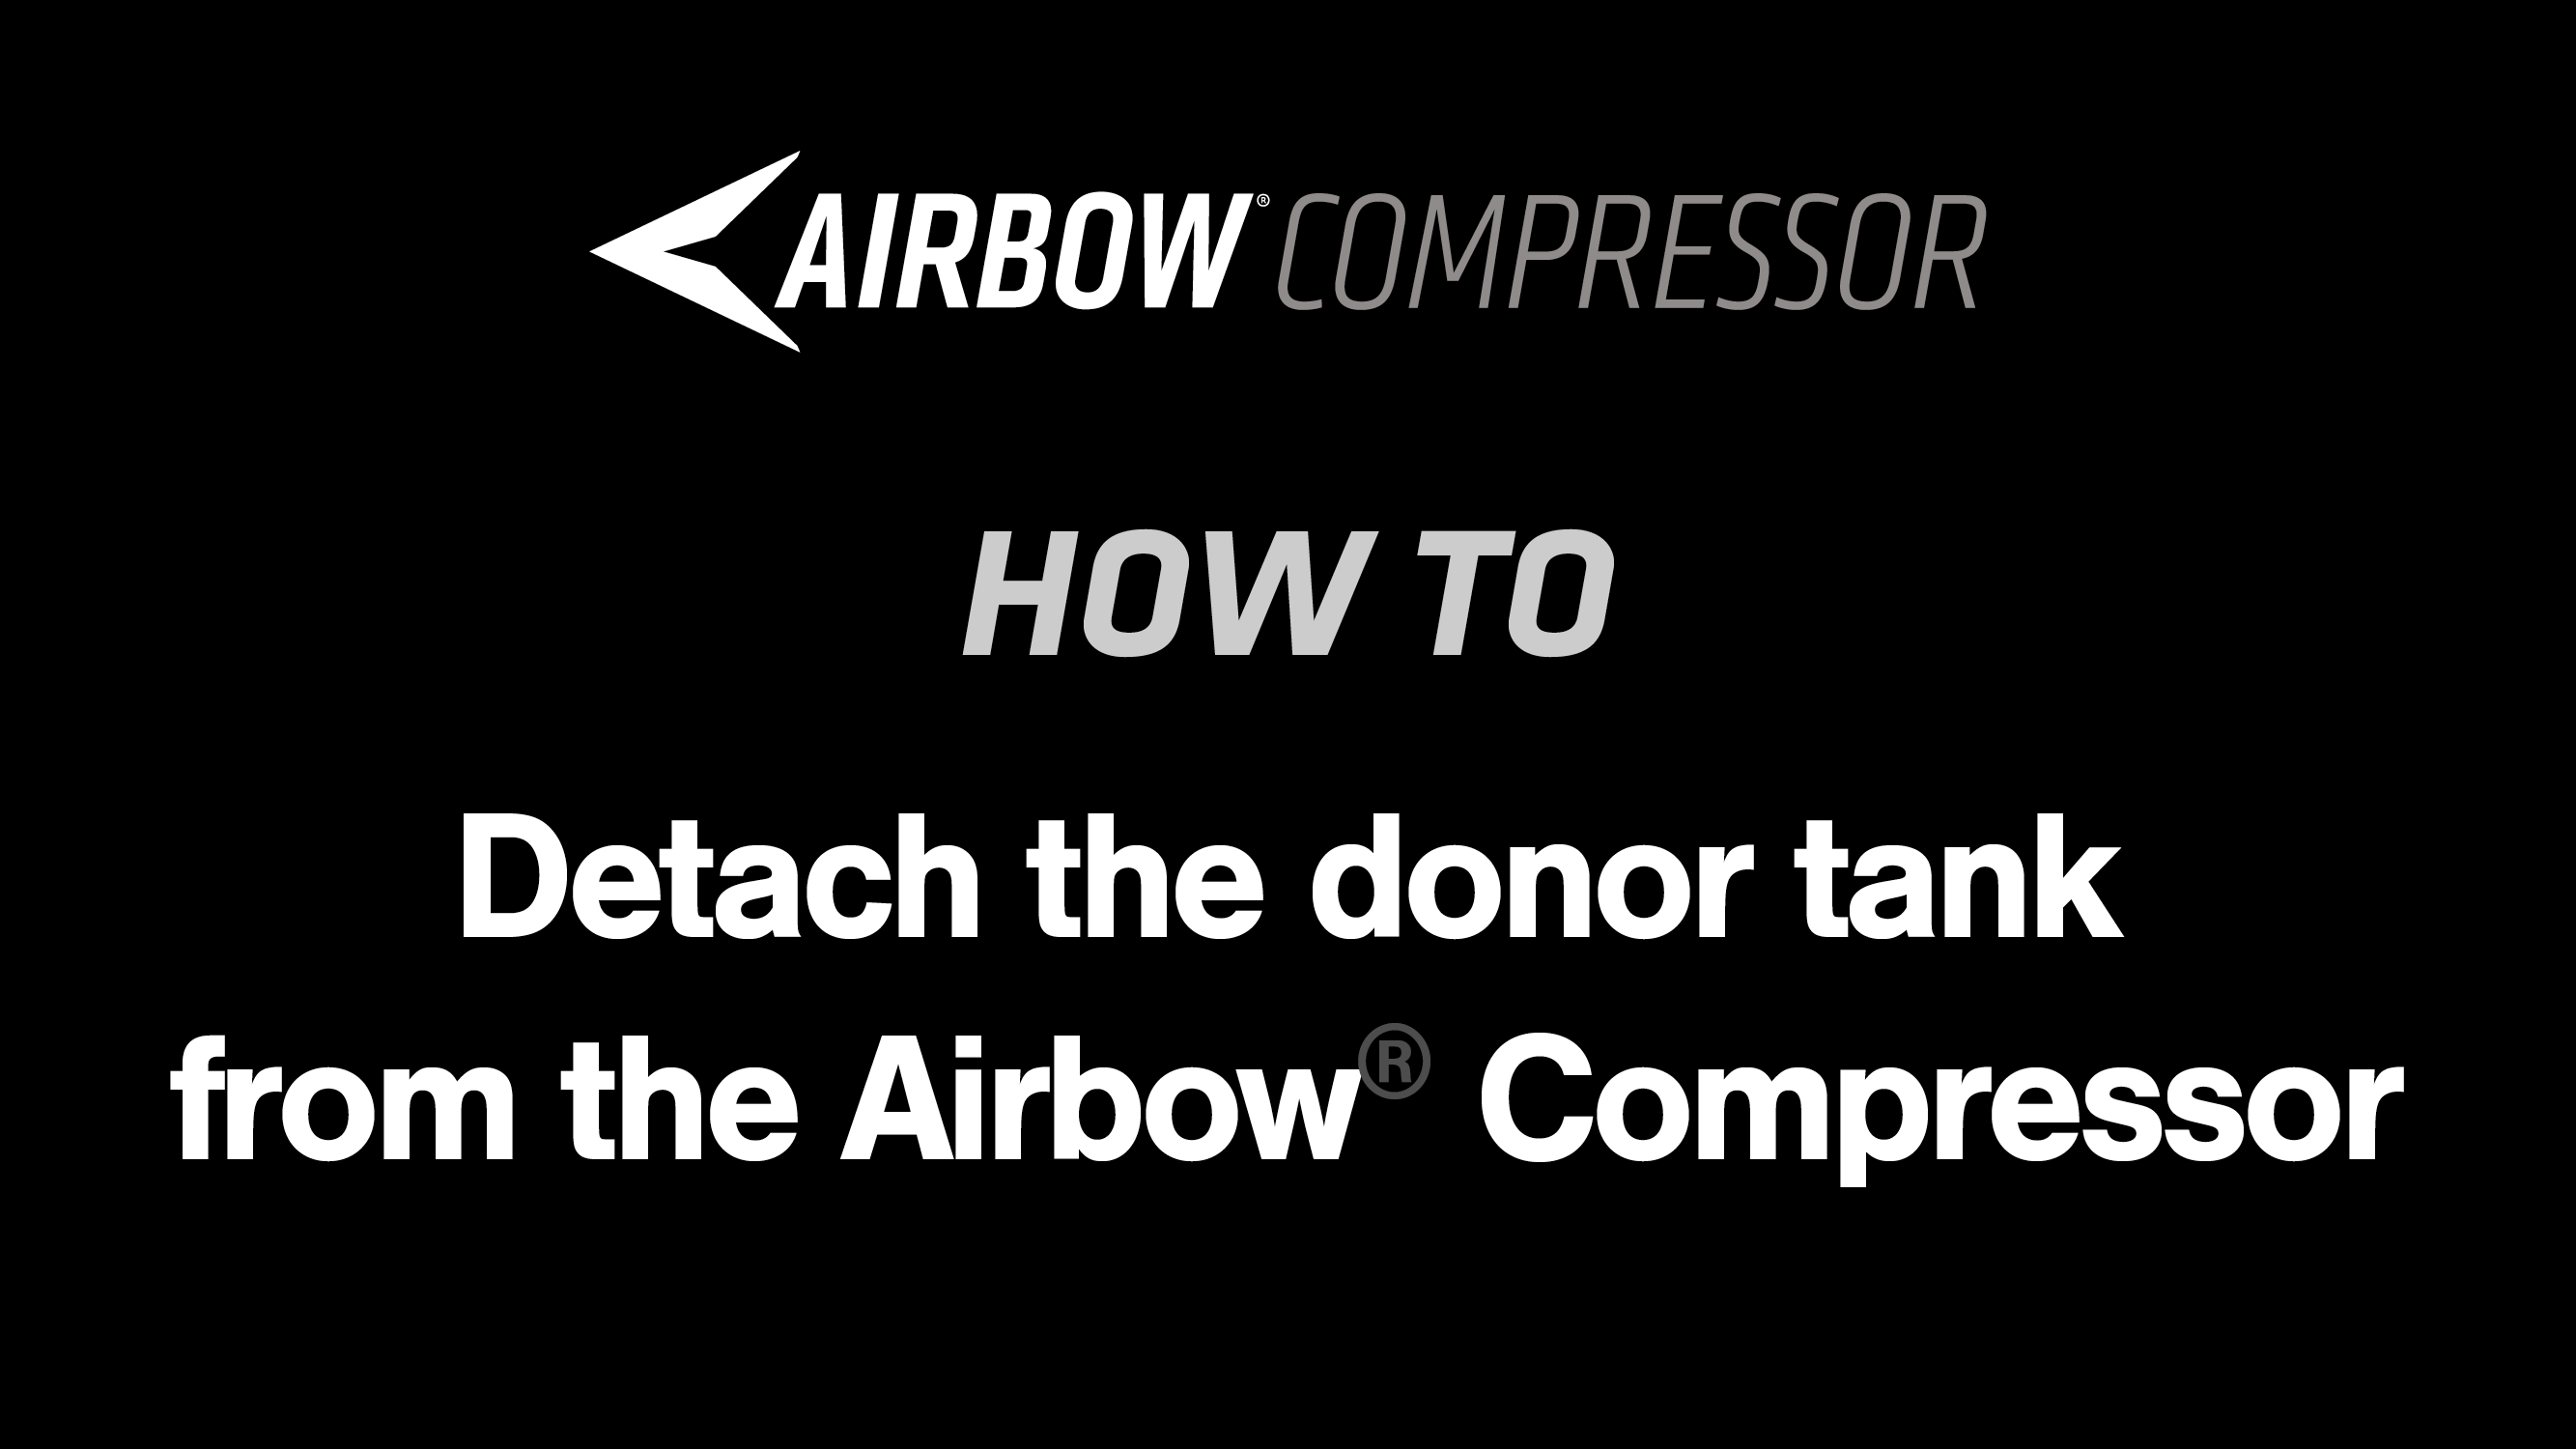 How to: Detach the donor tank from the Airbow® Compressor